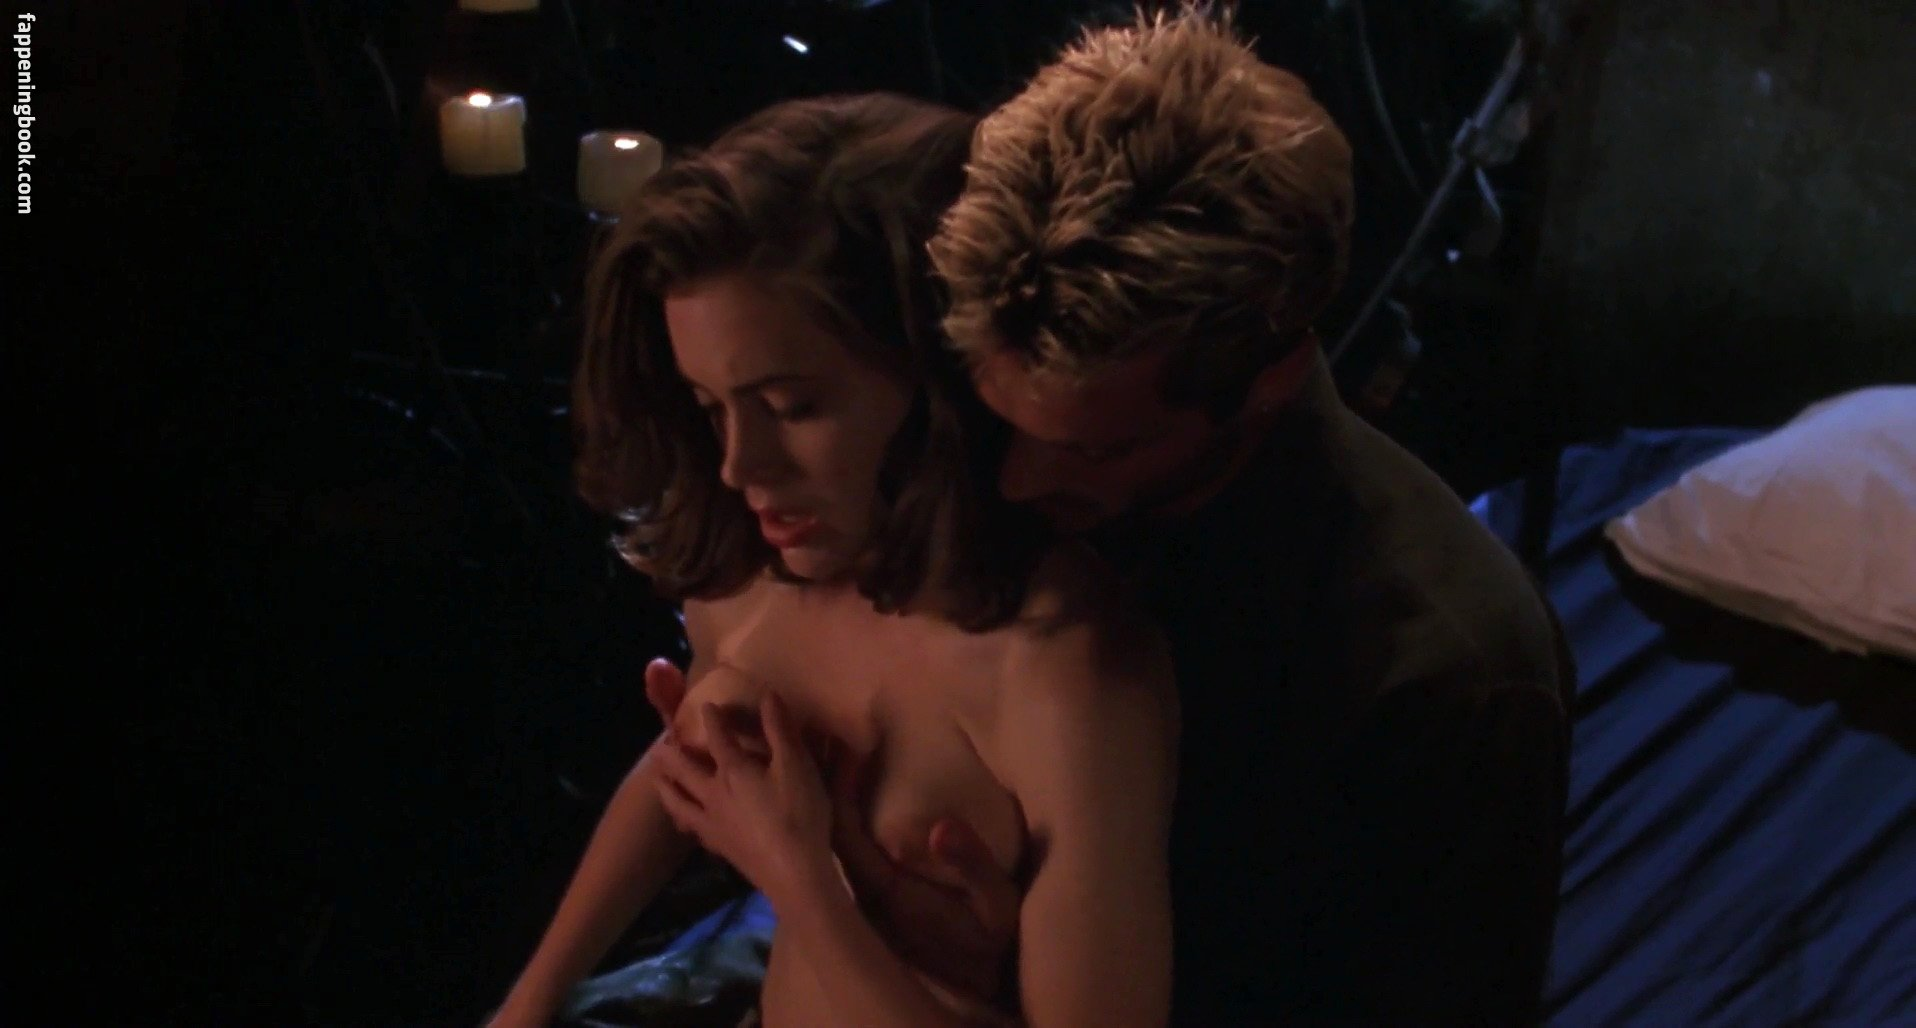 Alyssa Milano Leaked Photos alyssa milano nude, sexy, the fappening, uncensored - photo